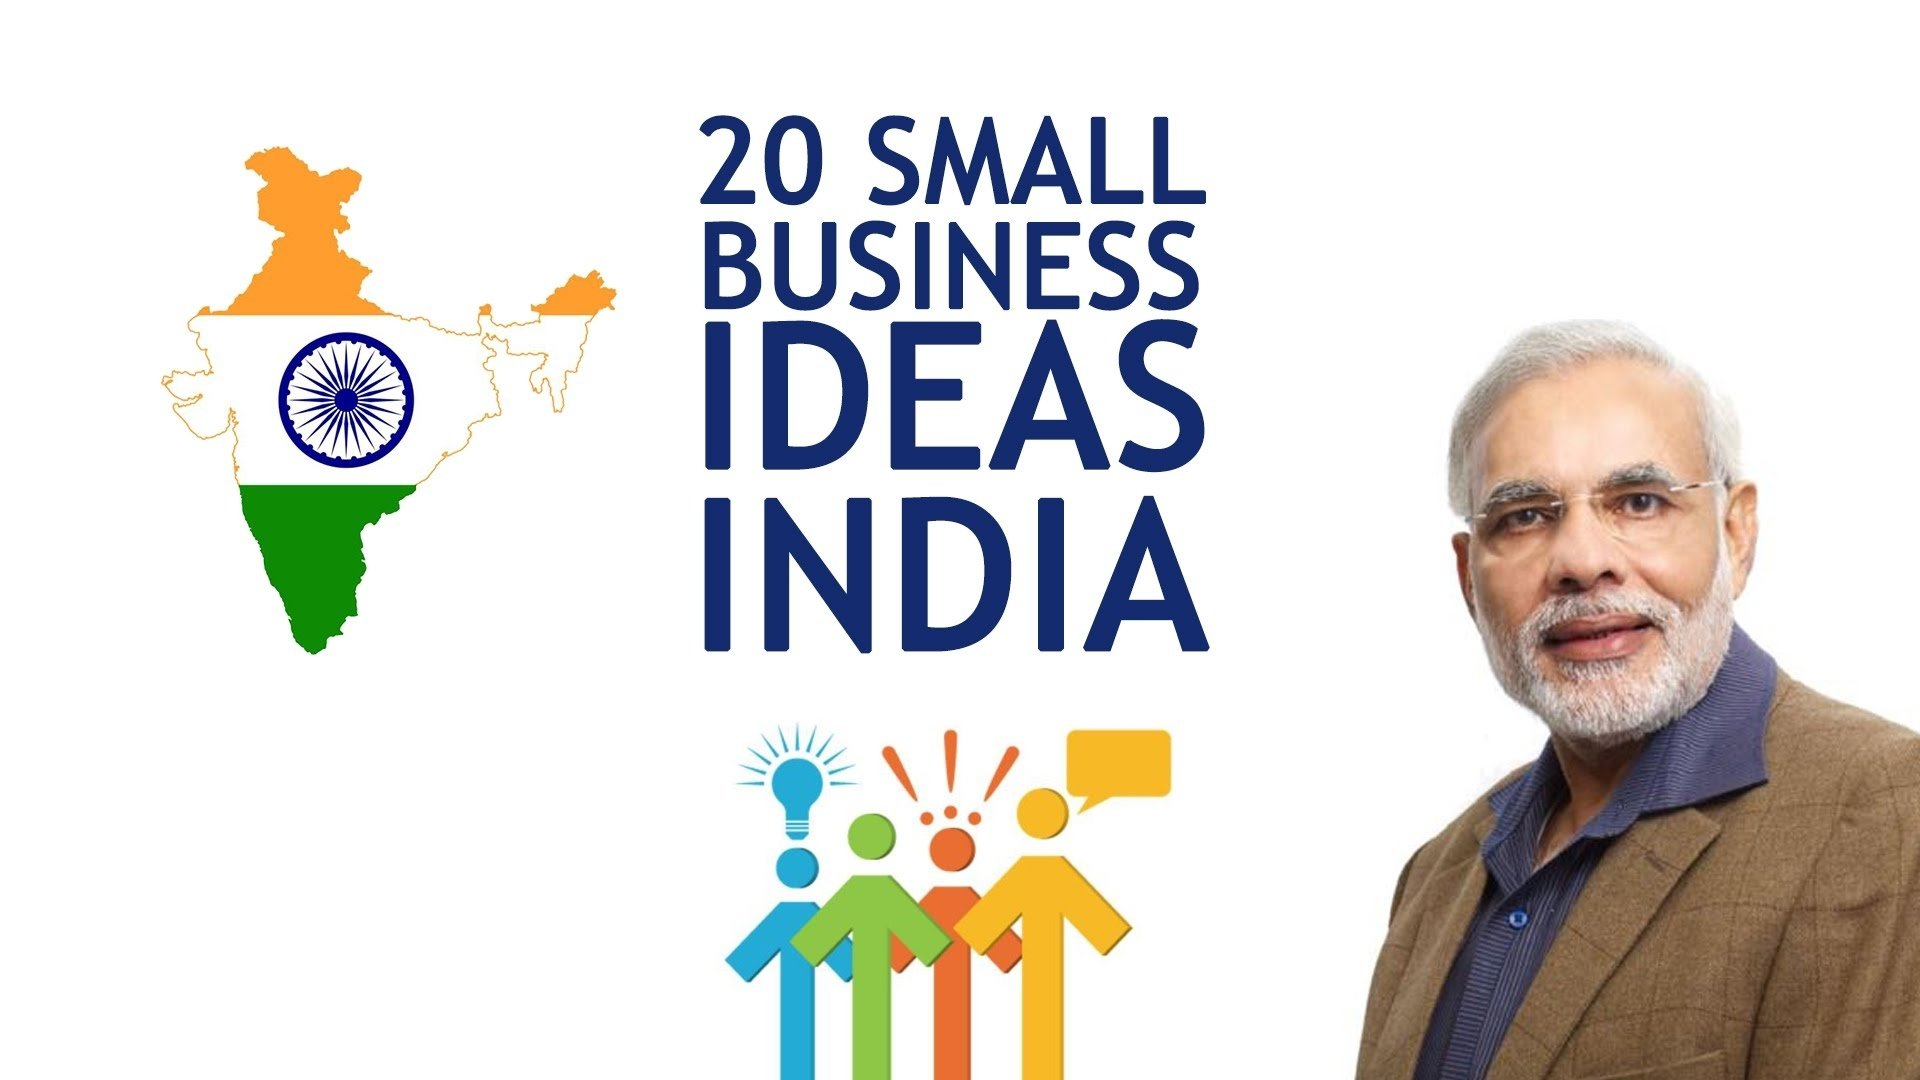 10 Most Recommended Good Home Based Business Ideas top 20 best small business ideas in india youtube 1 2020